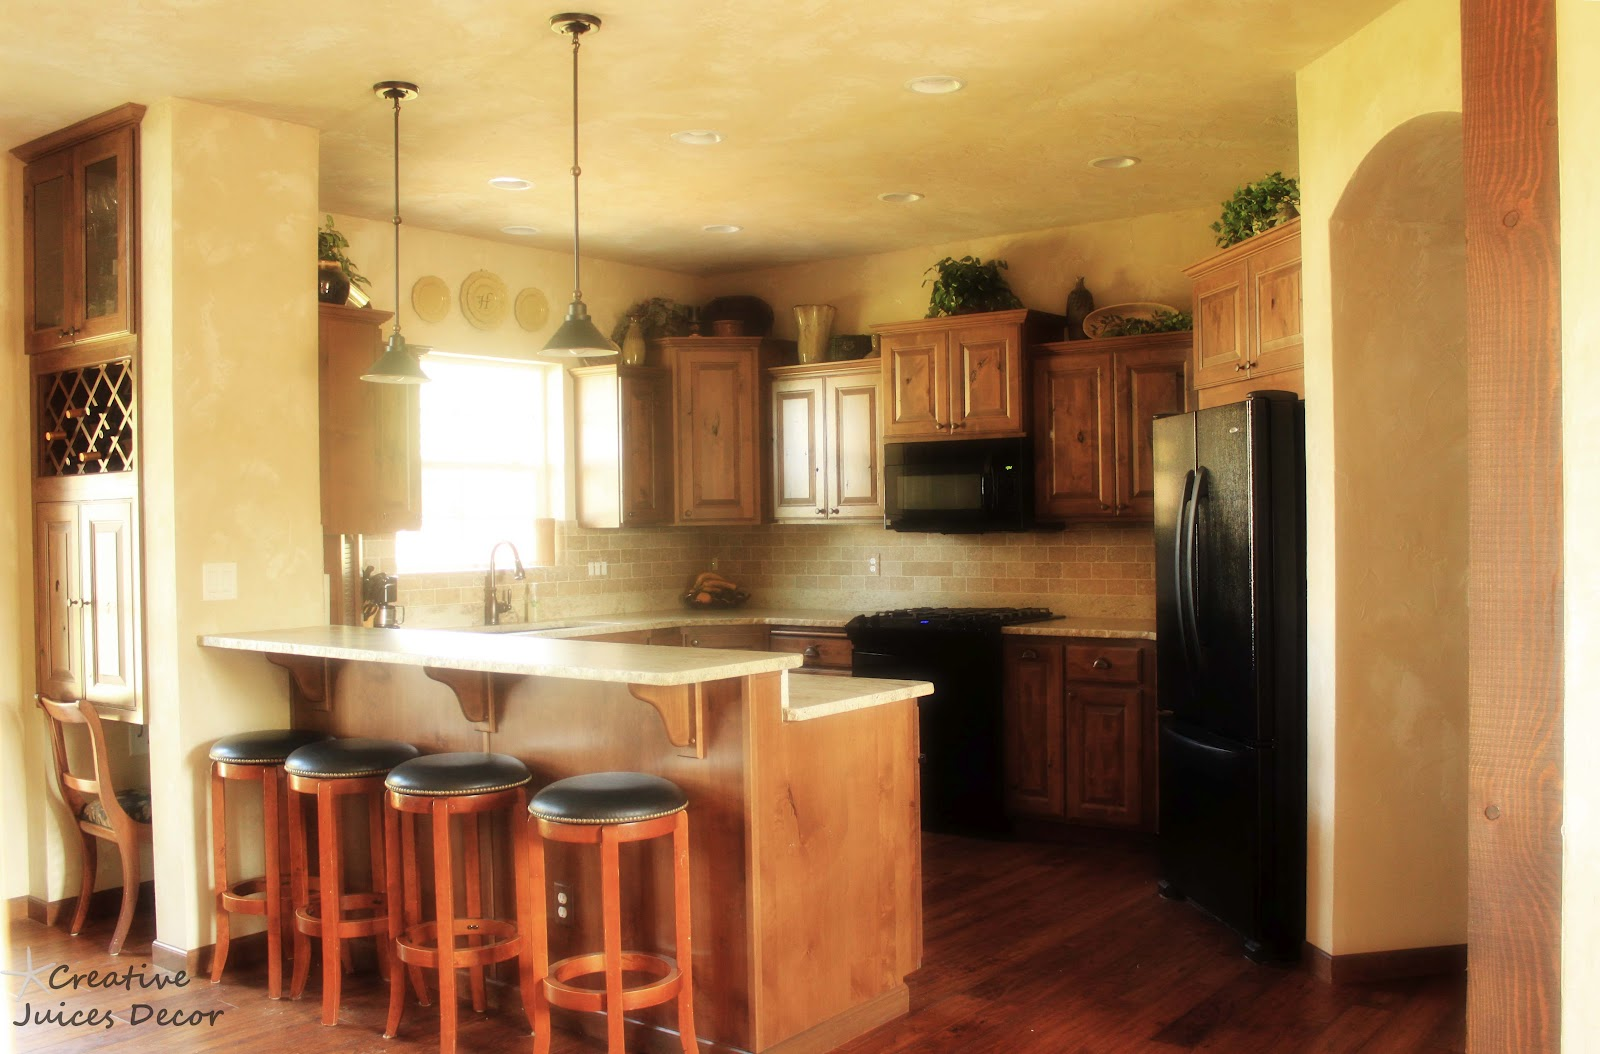 Tuscan kitchen design ideas review – Shopping Guide. We Are ...